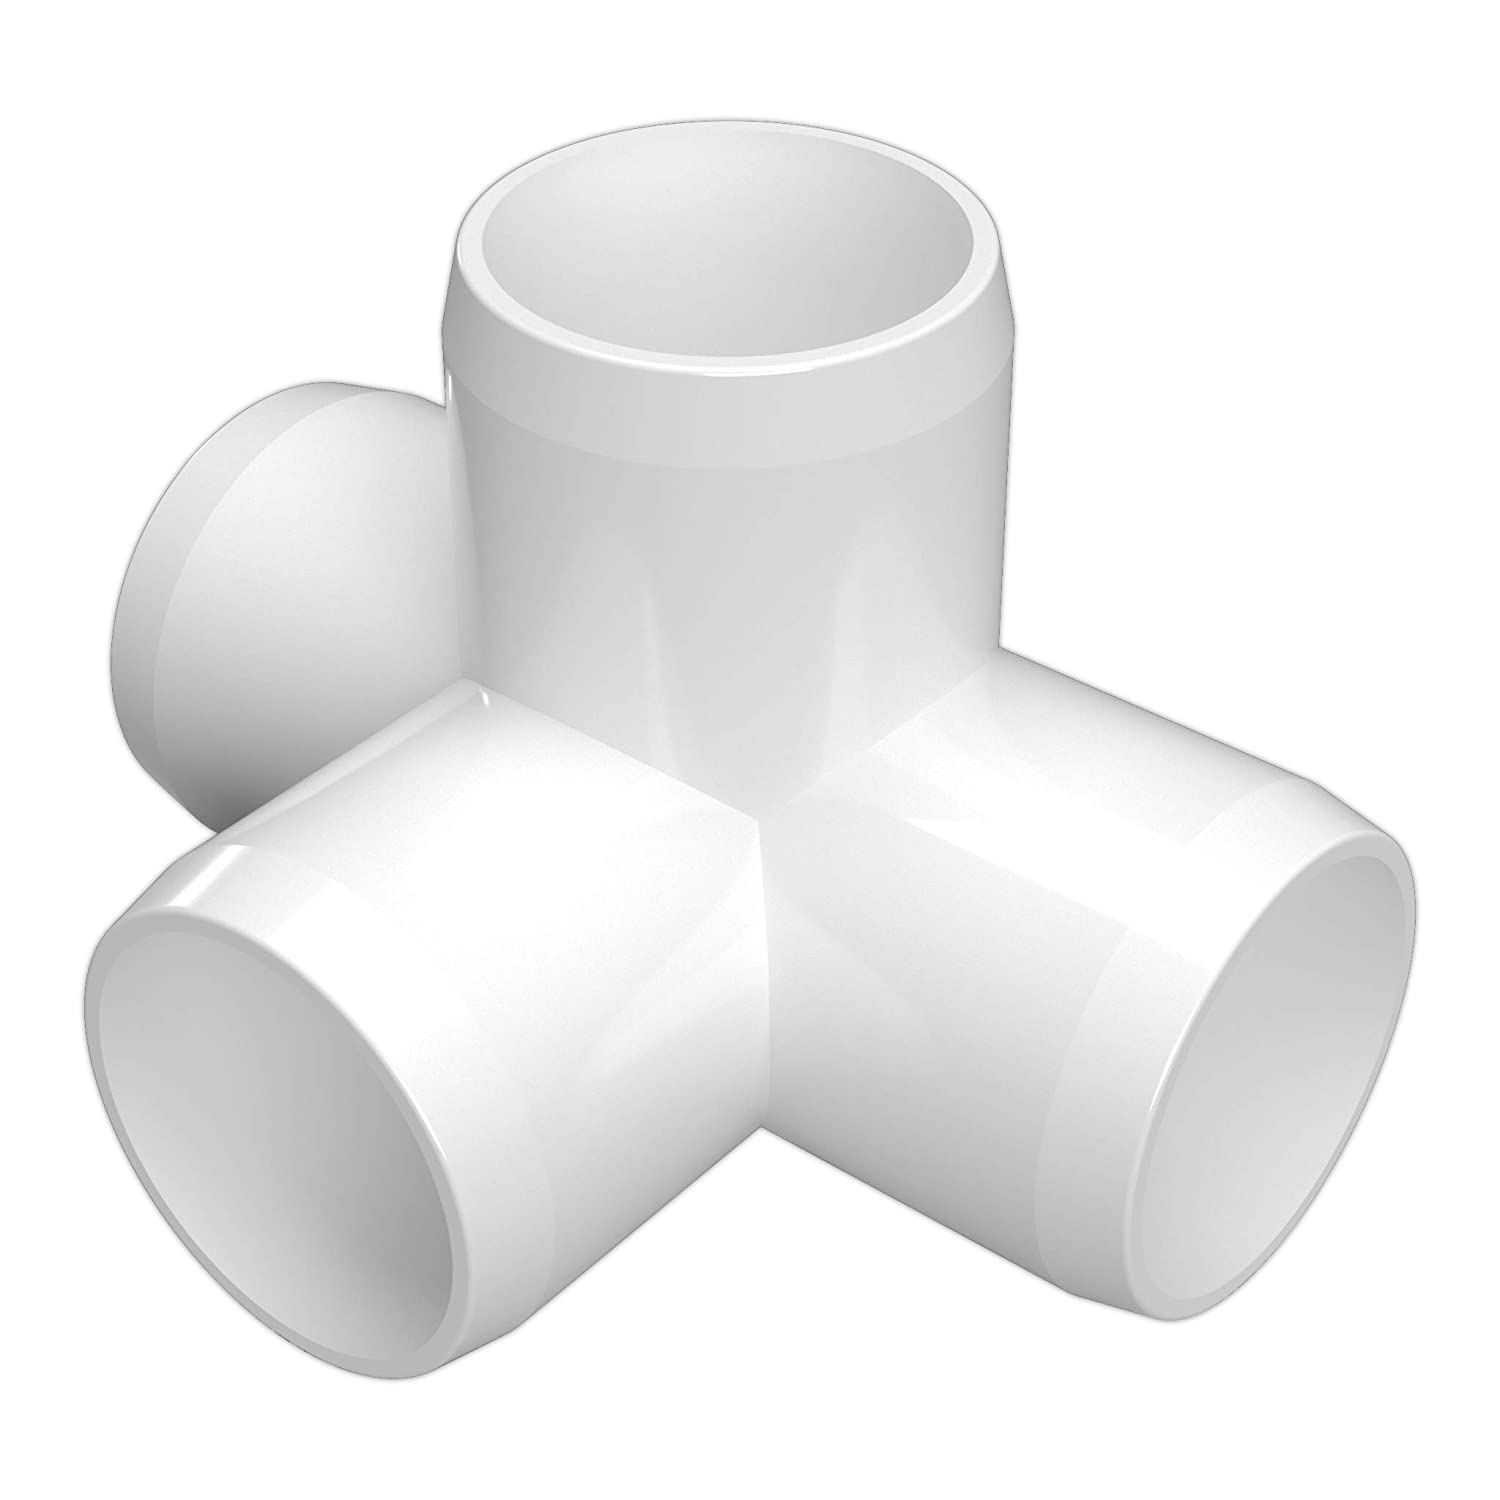 "FORMUFIT F0014WT-WH-4 4-Way Tee PVC Fitting, Furniture Grade, 1"" Size, White (Pack of 4)"